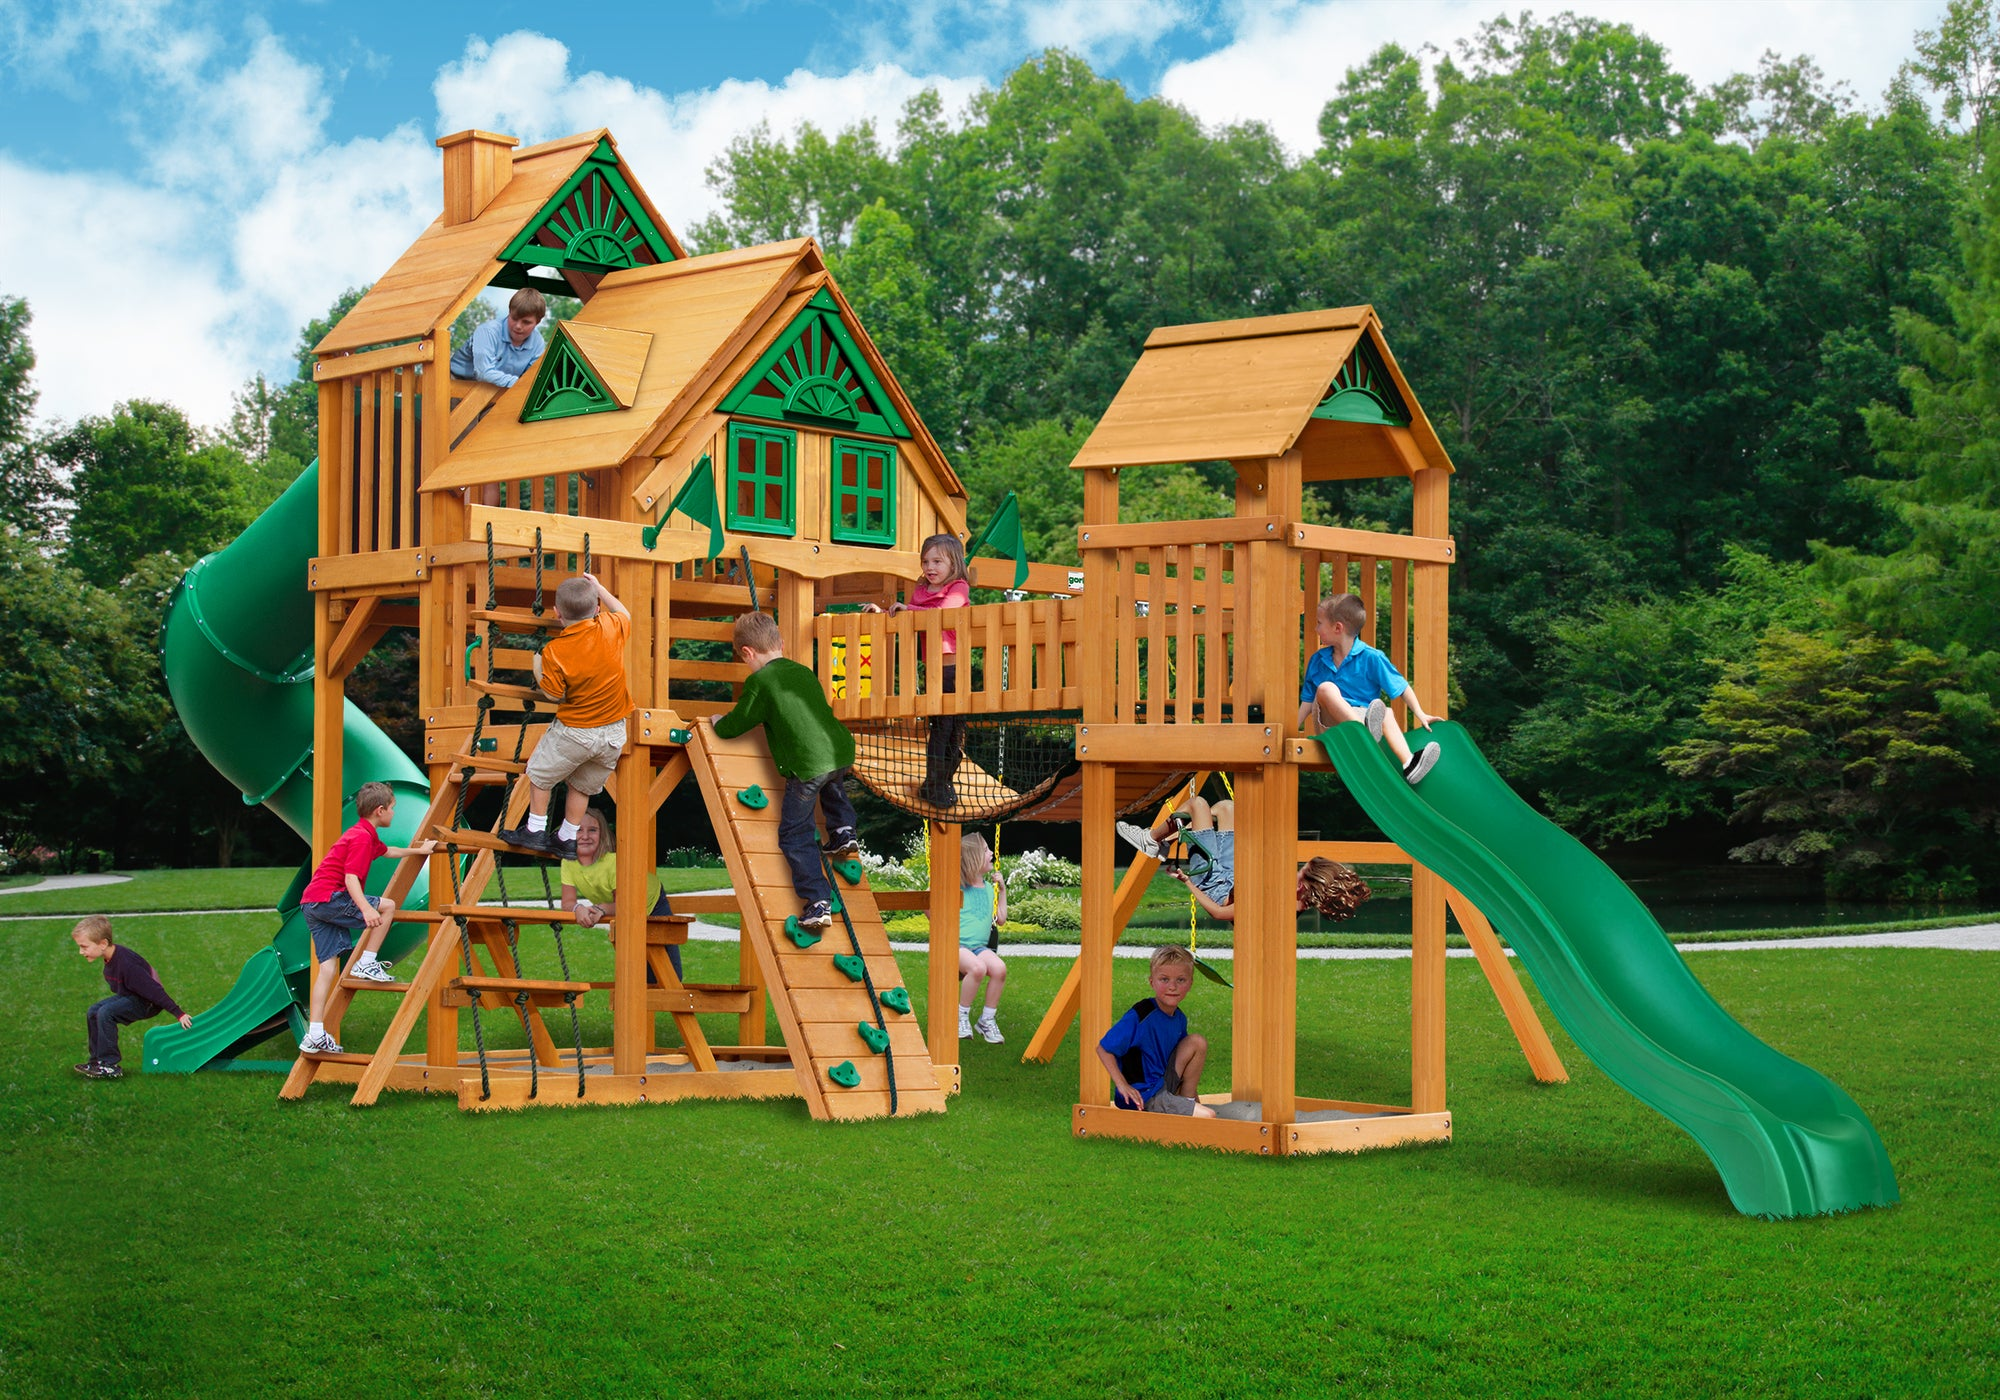 Gorilla Playsets Treasure Trove I Treehouse Swing Set - Swing Set Paradise